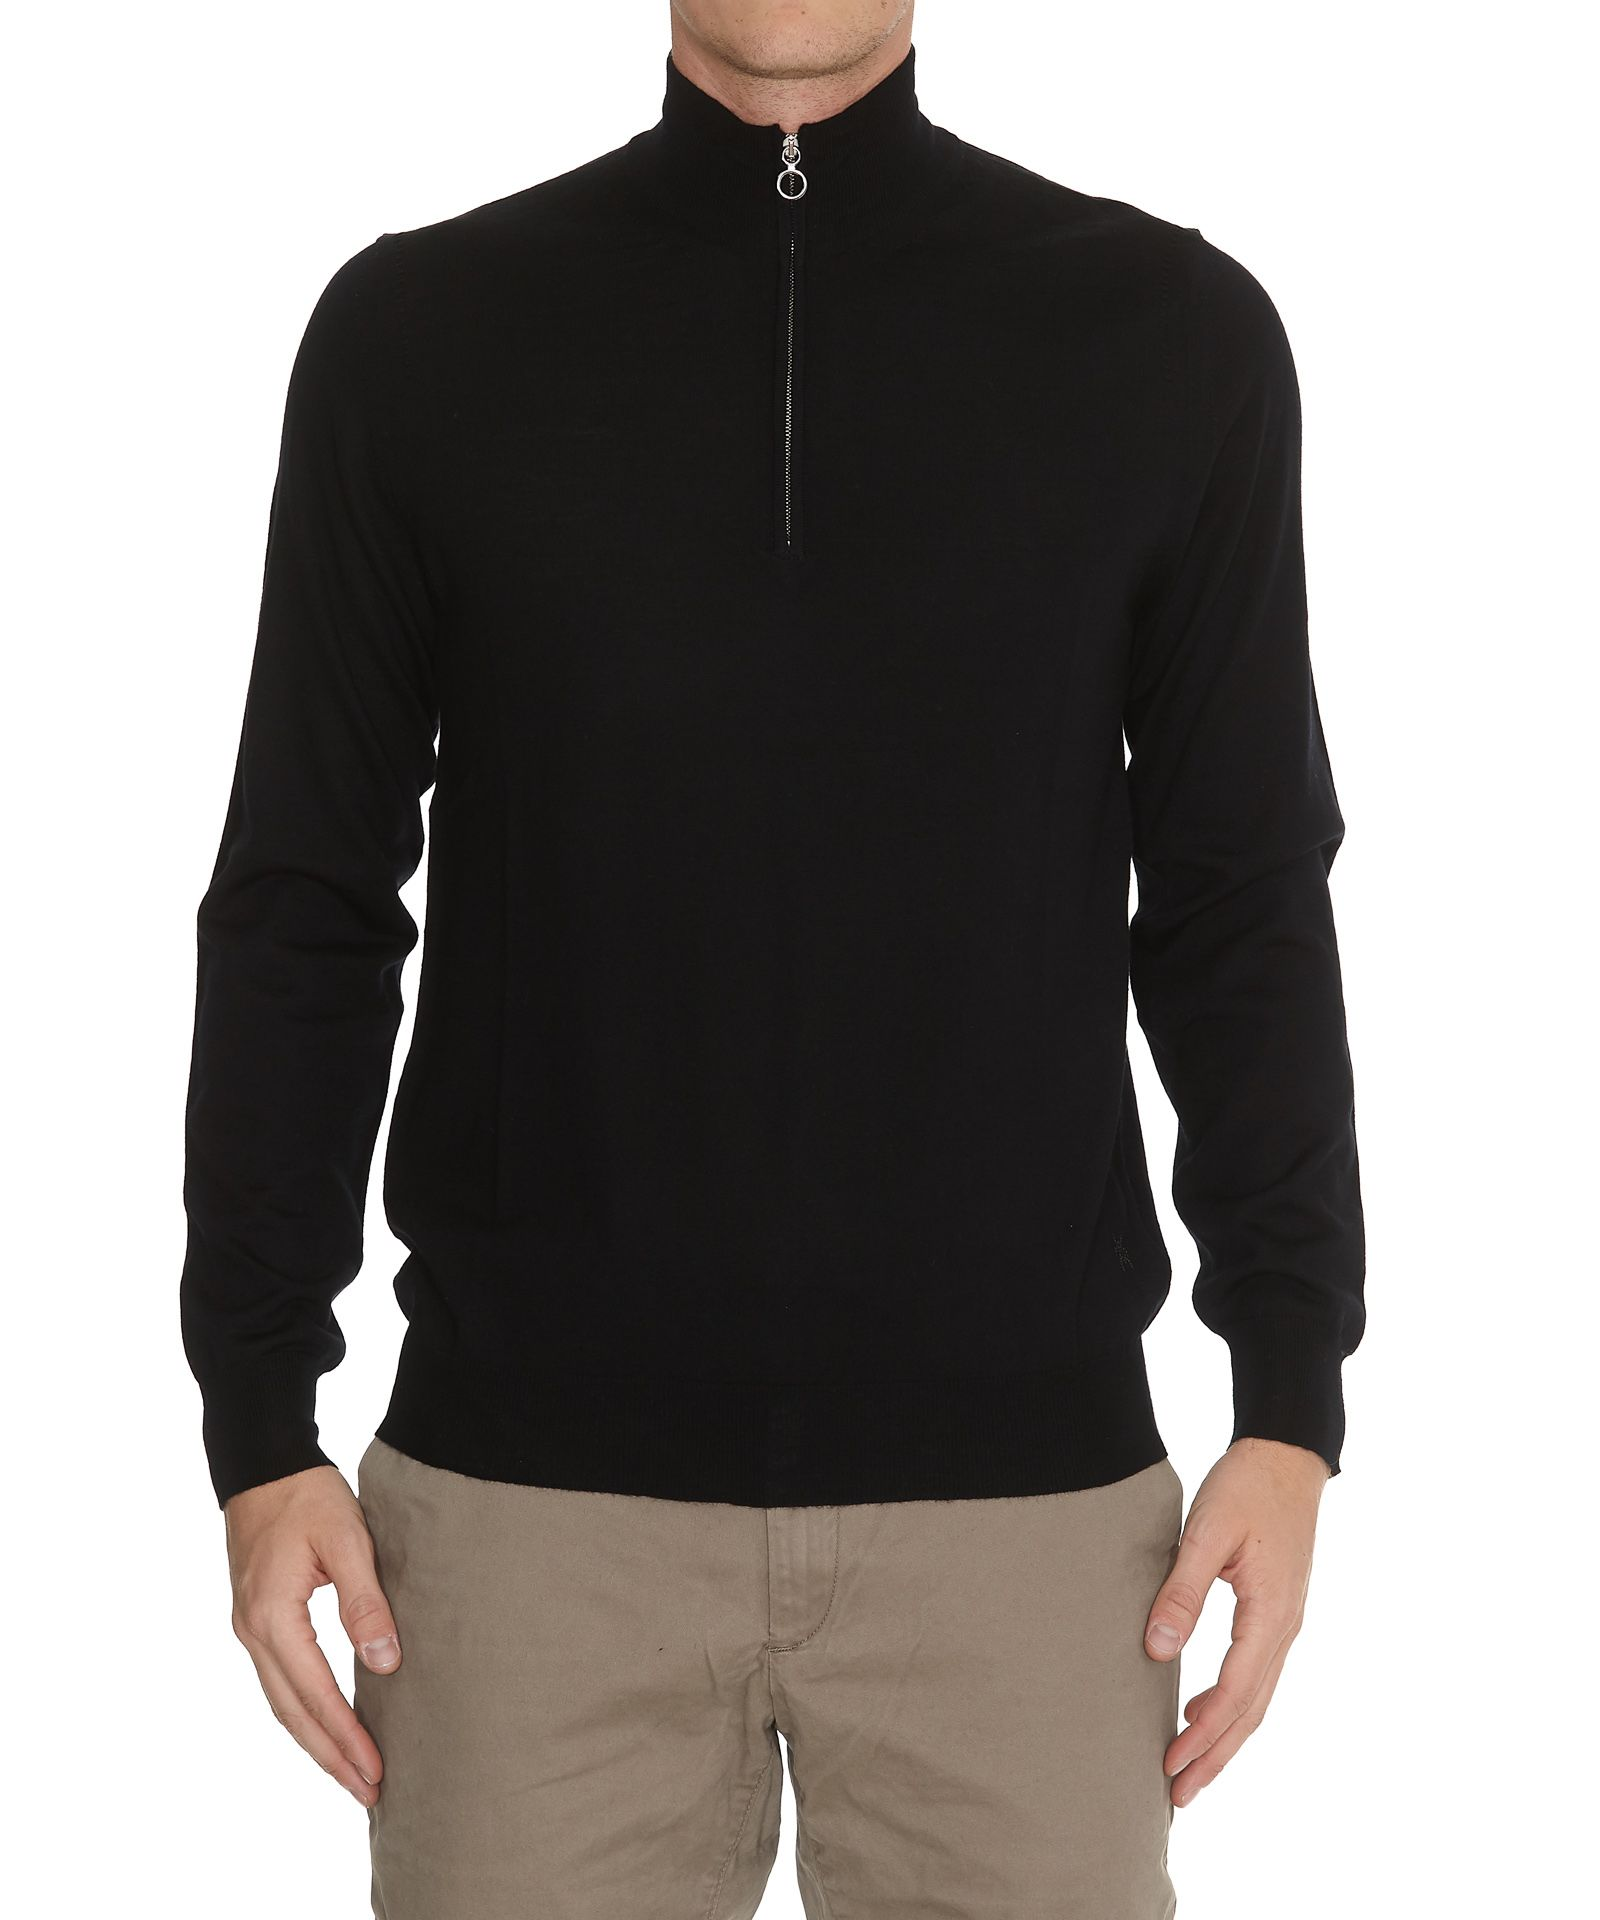 HŌSIO Zip Sweater in Black